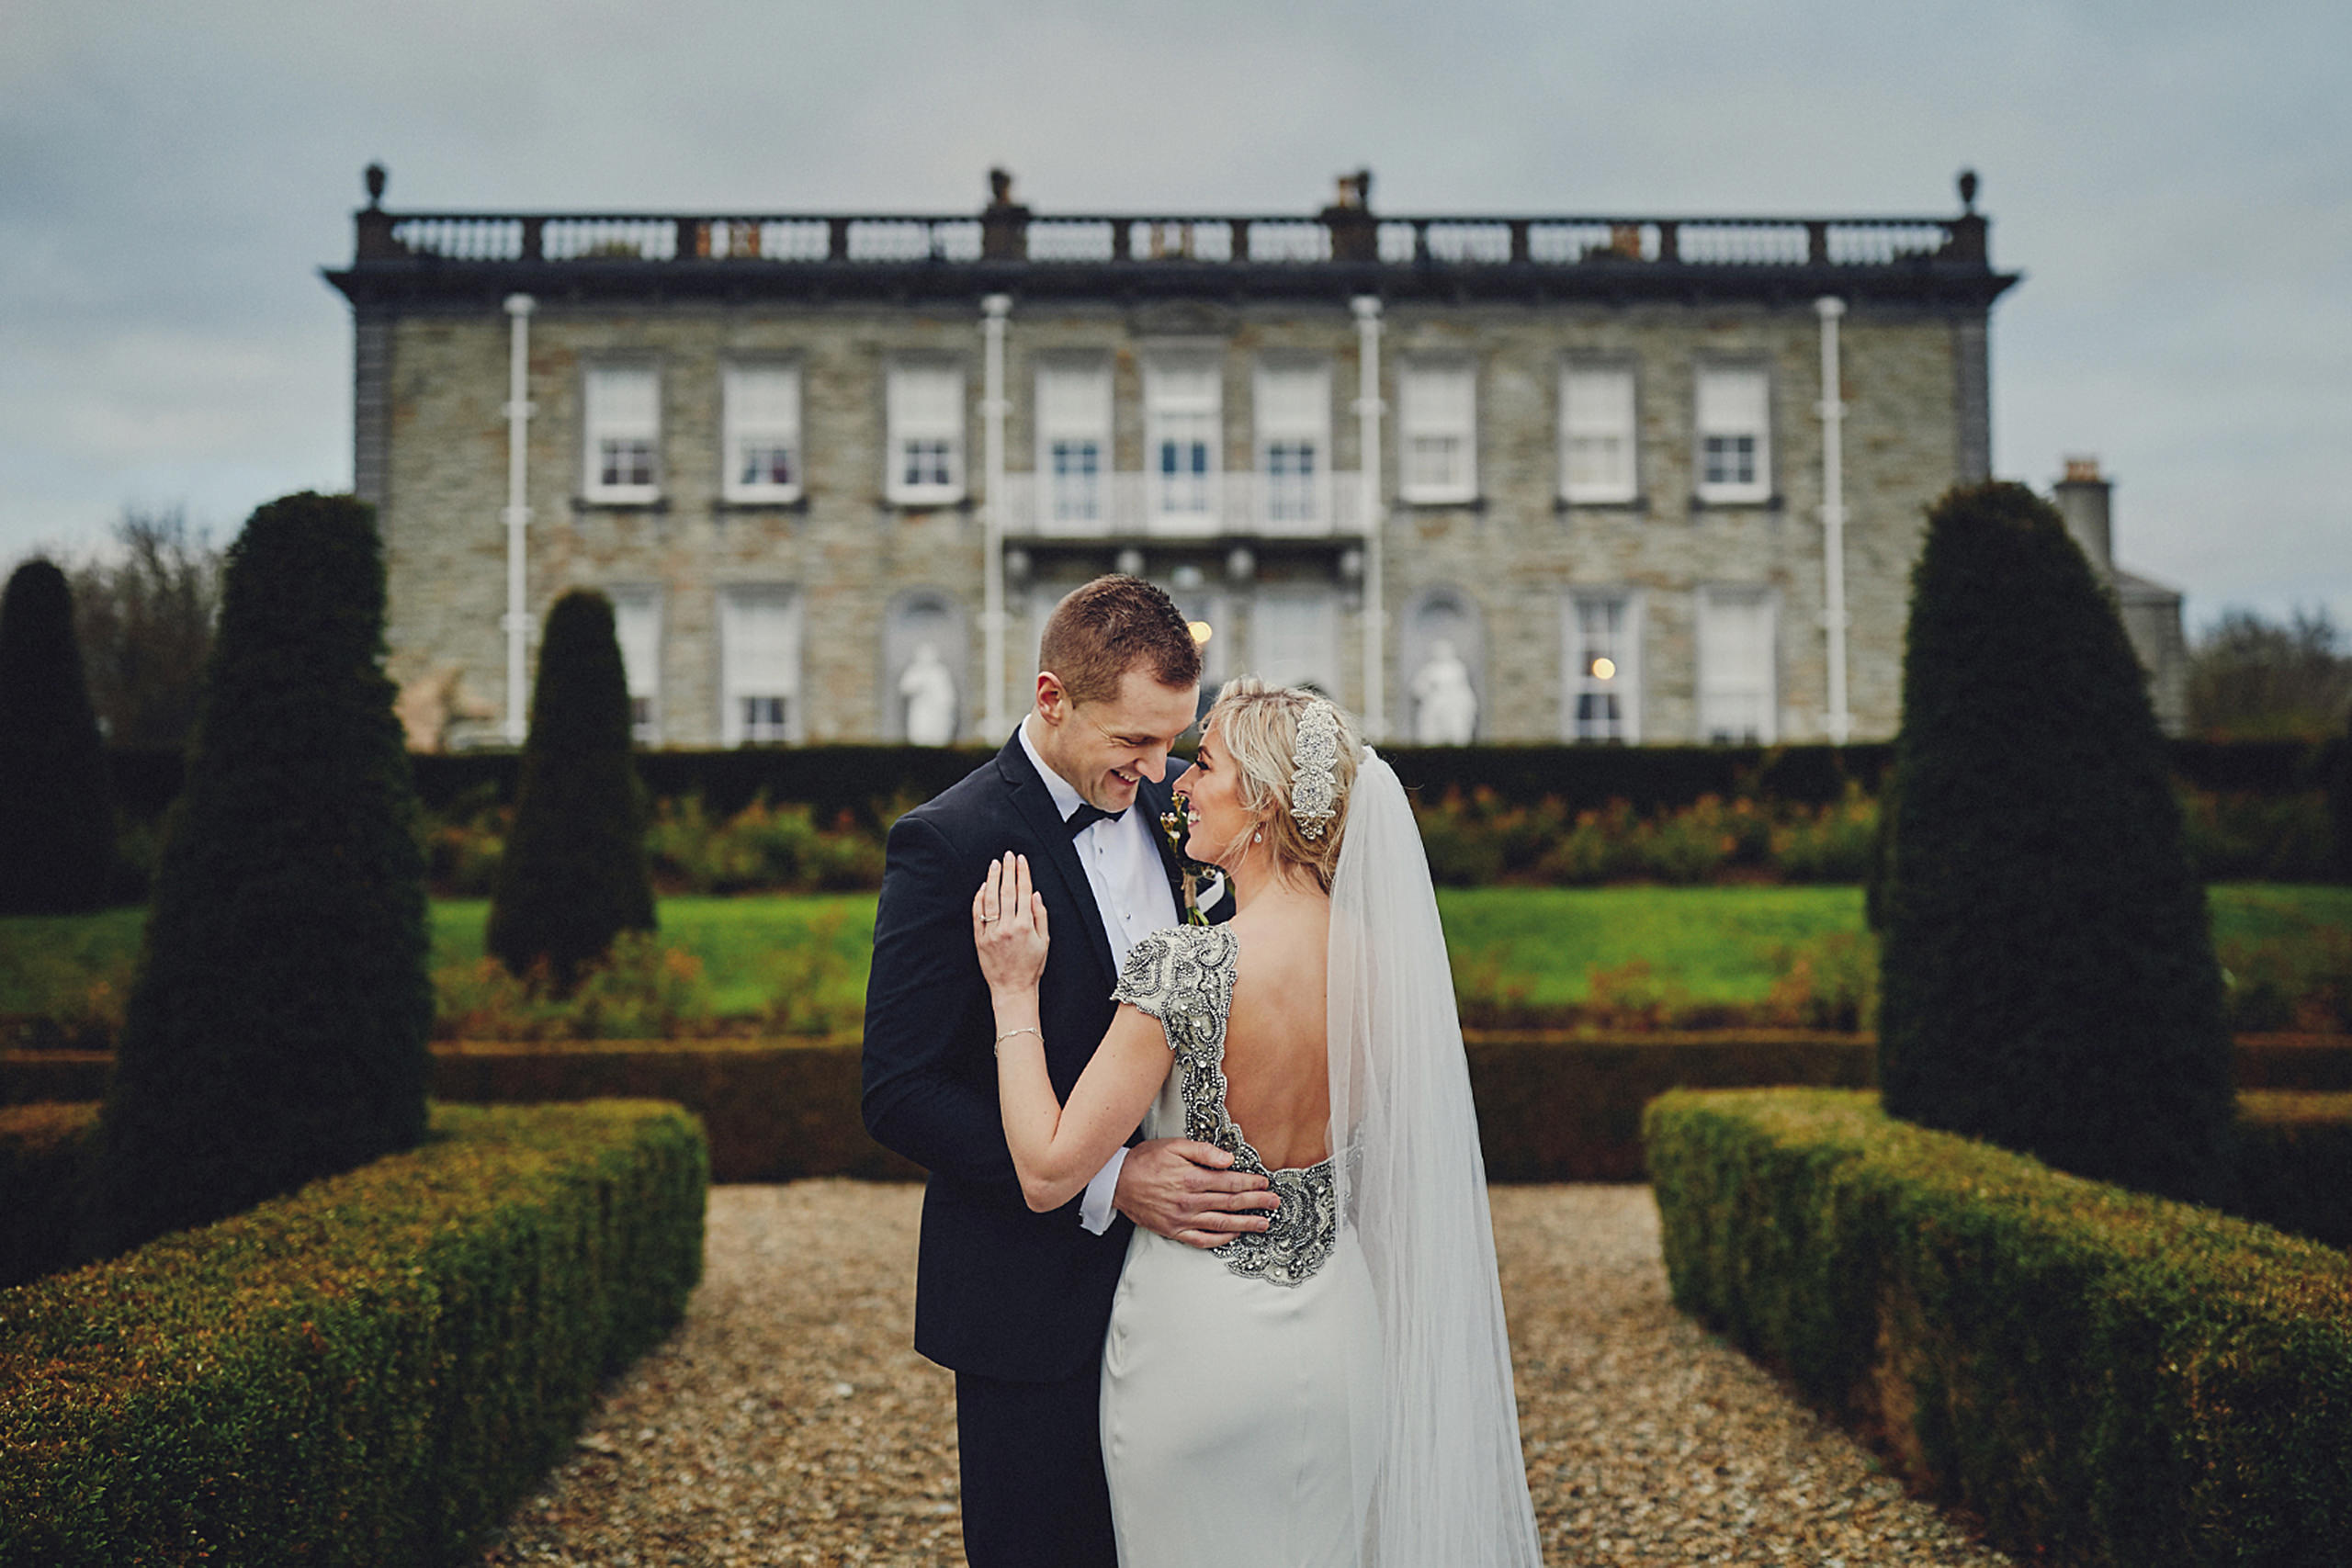 Wedding at The Palmerstown Estate